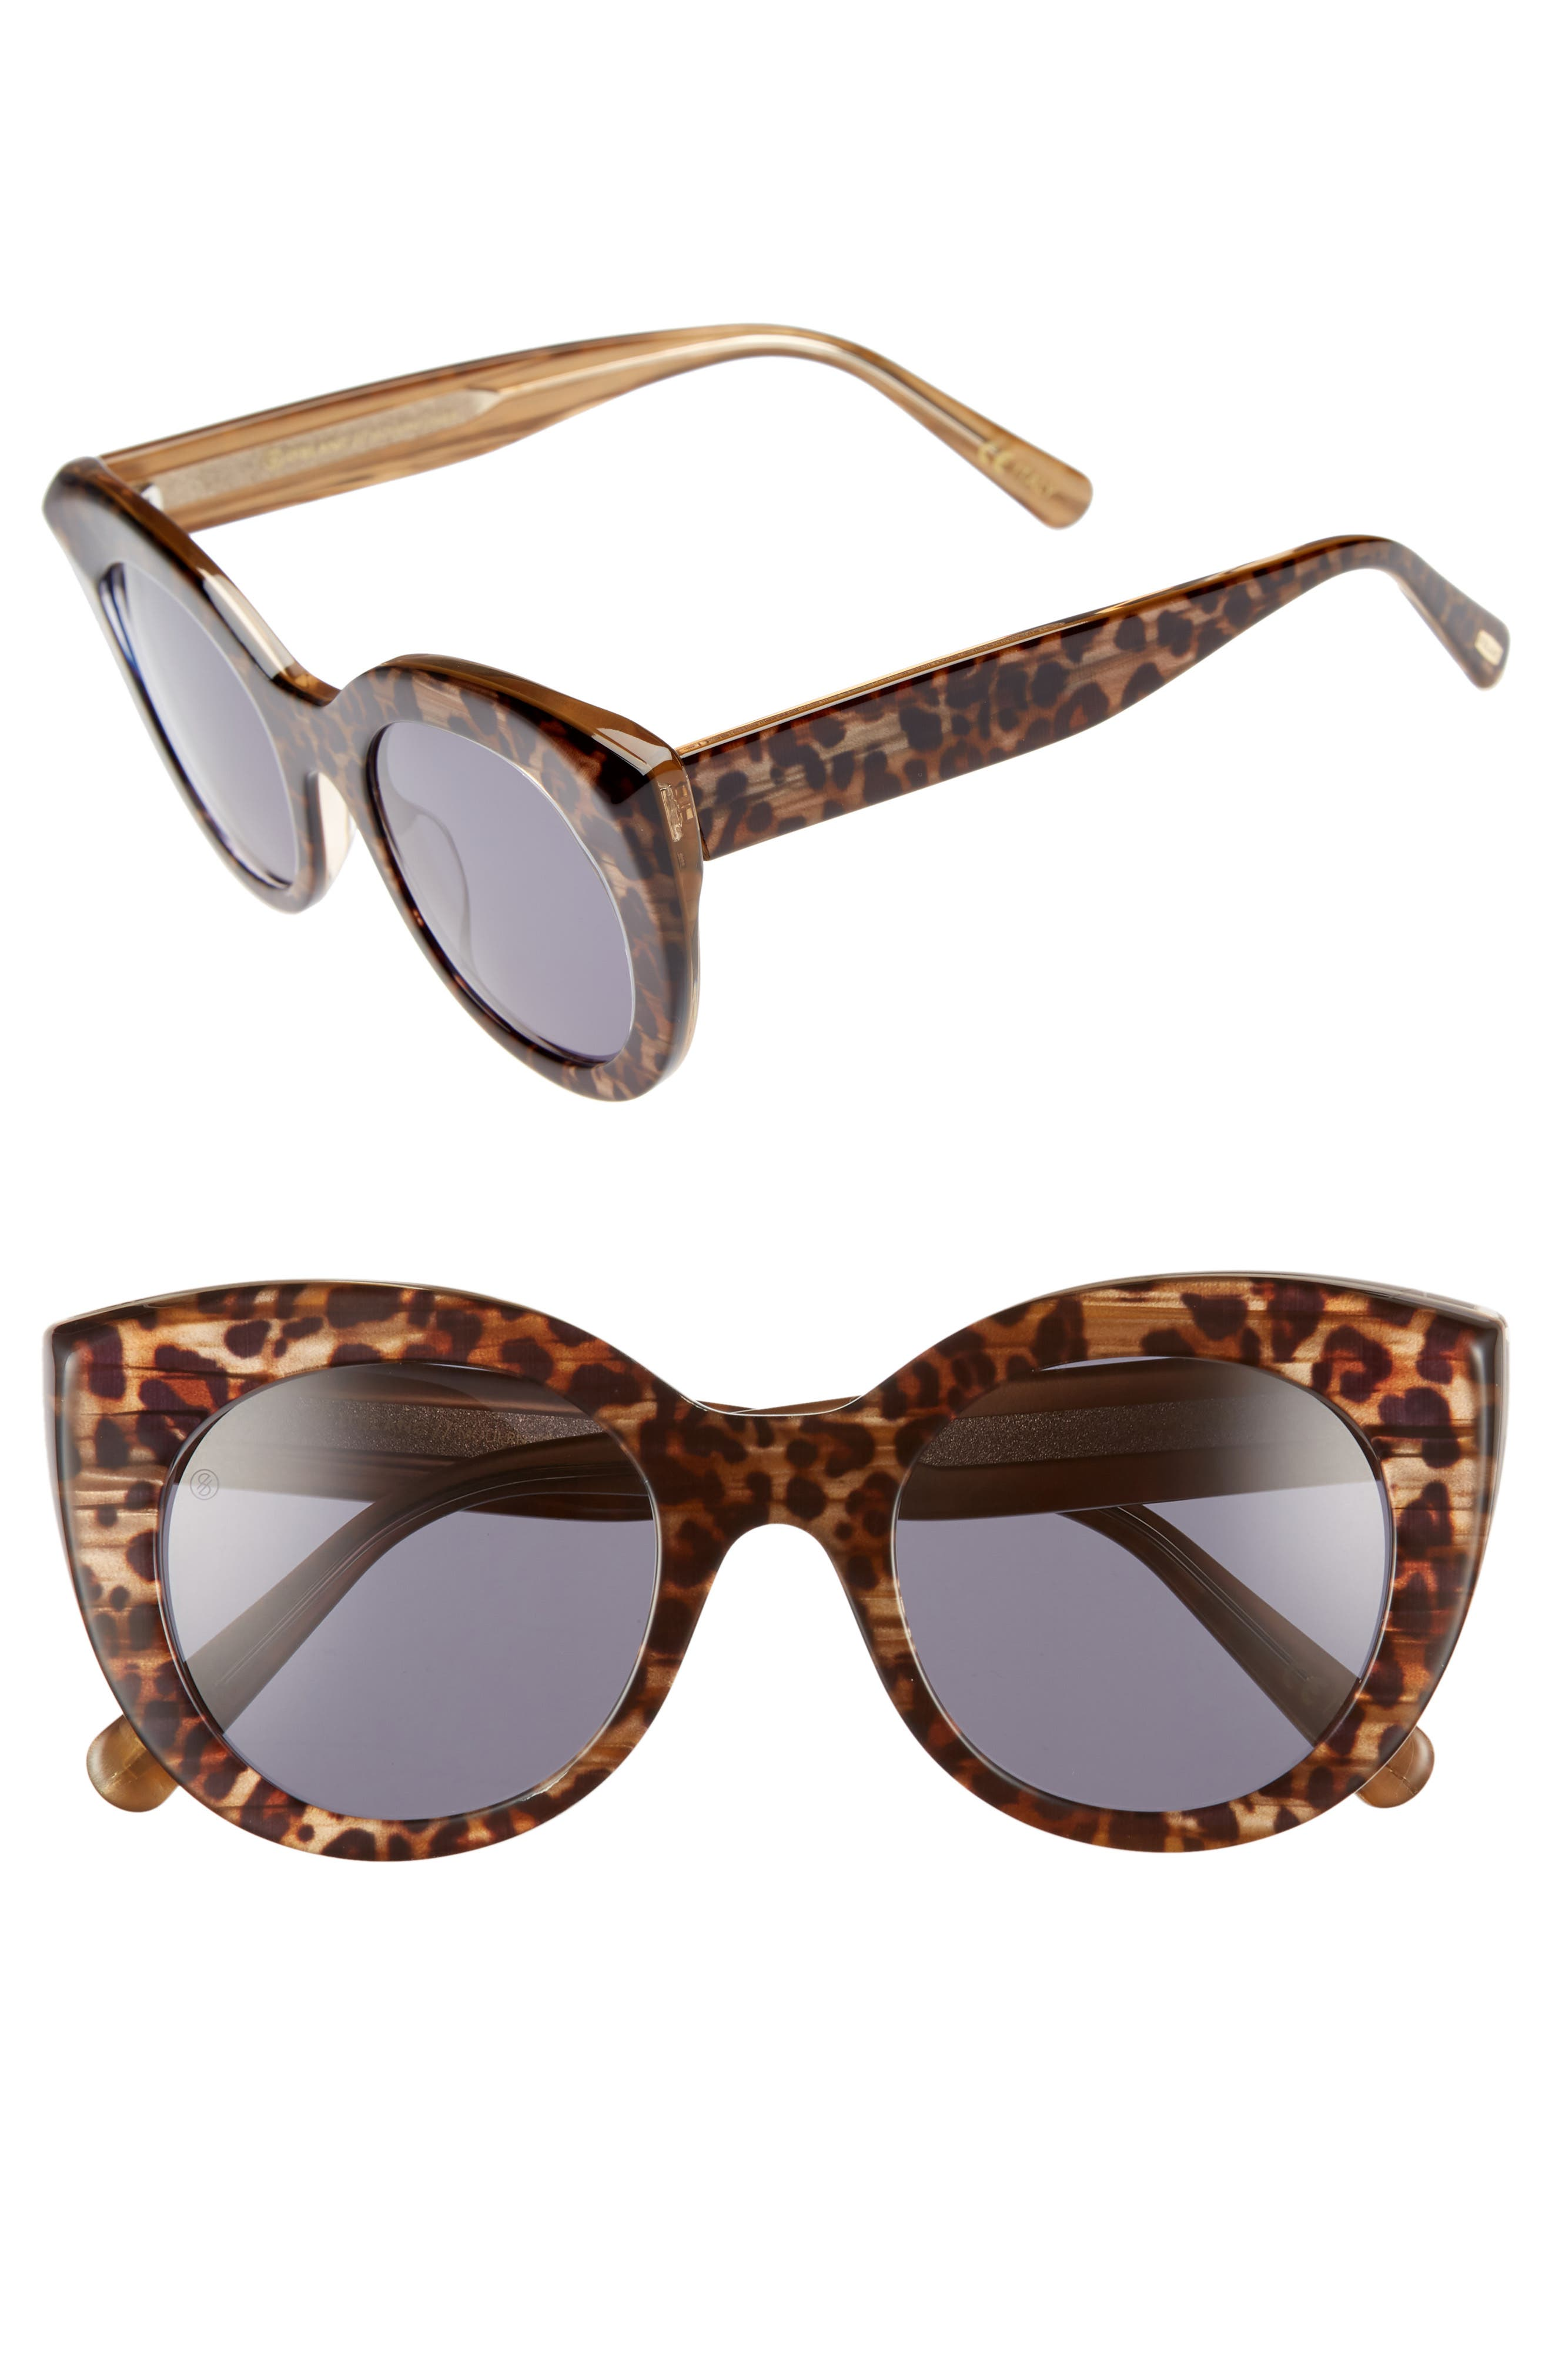 D'BLANC x Amuse Society Modern Lover 51mm Cat Eye Sunglasses,                         Main,                         color, 200